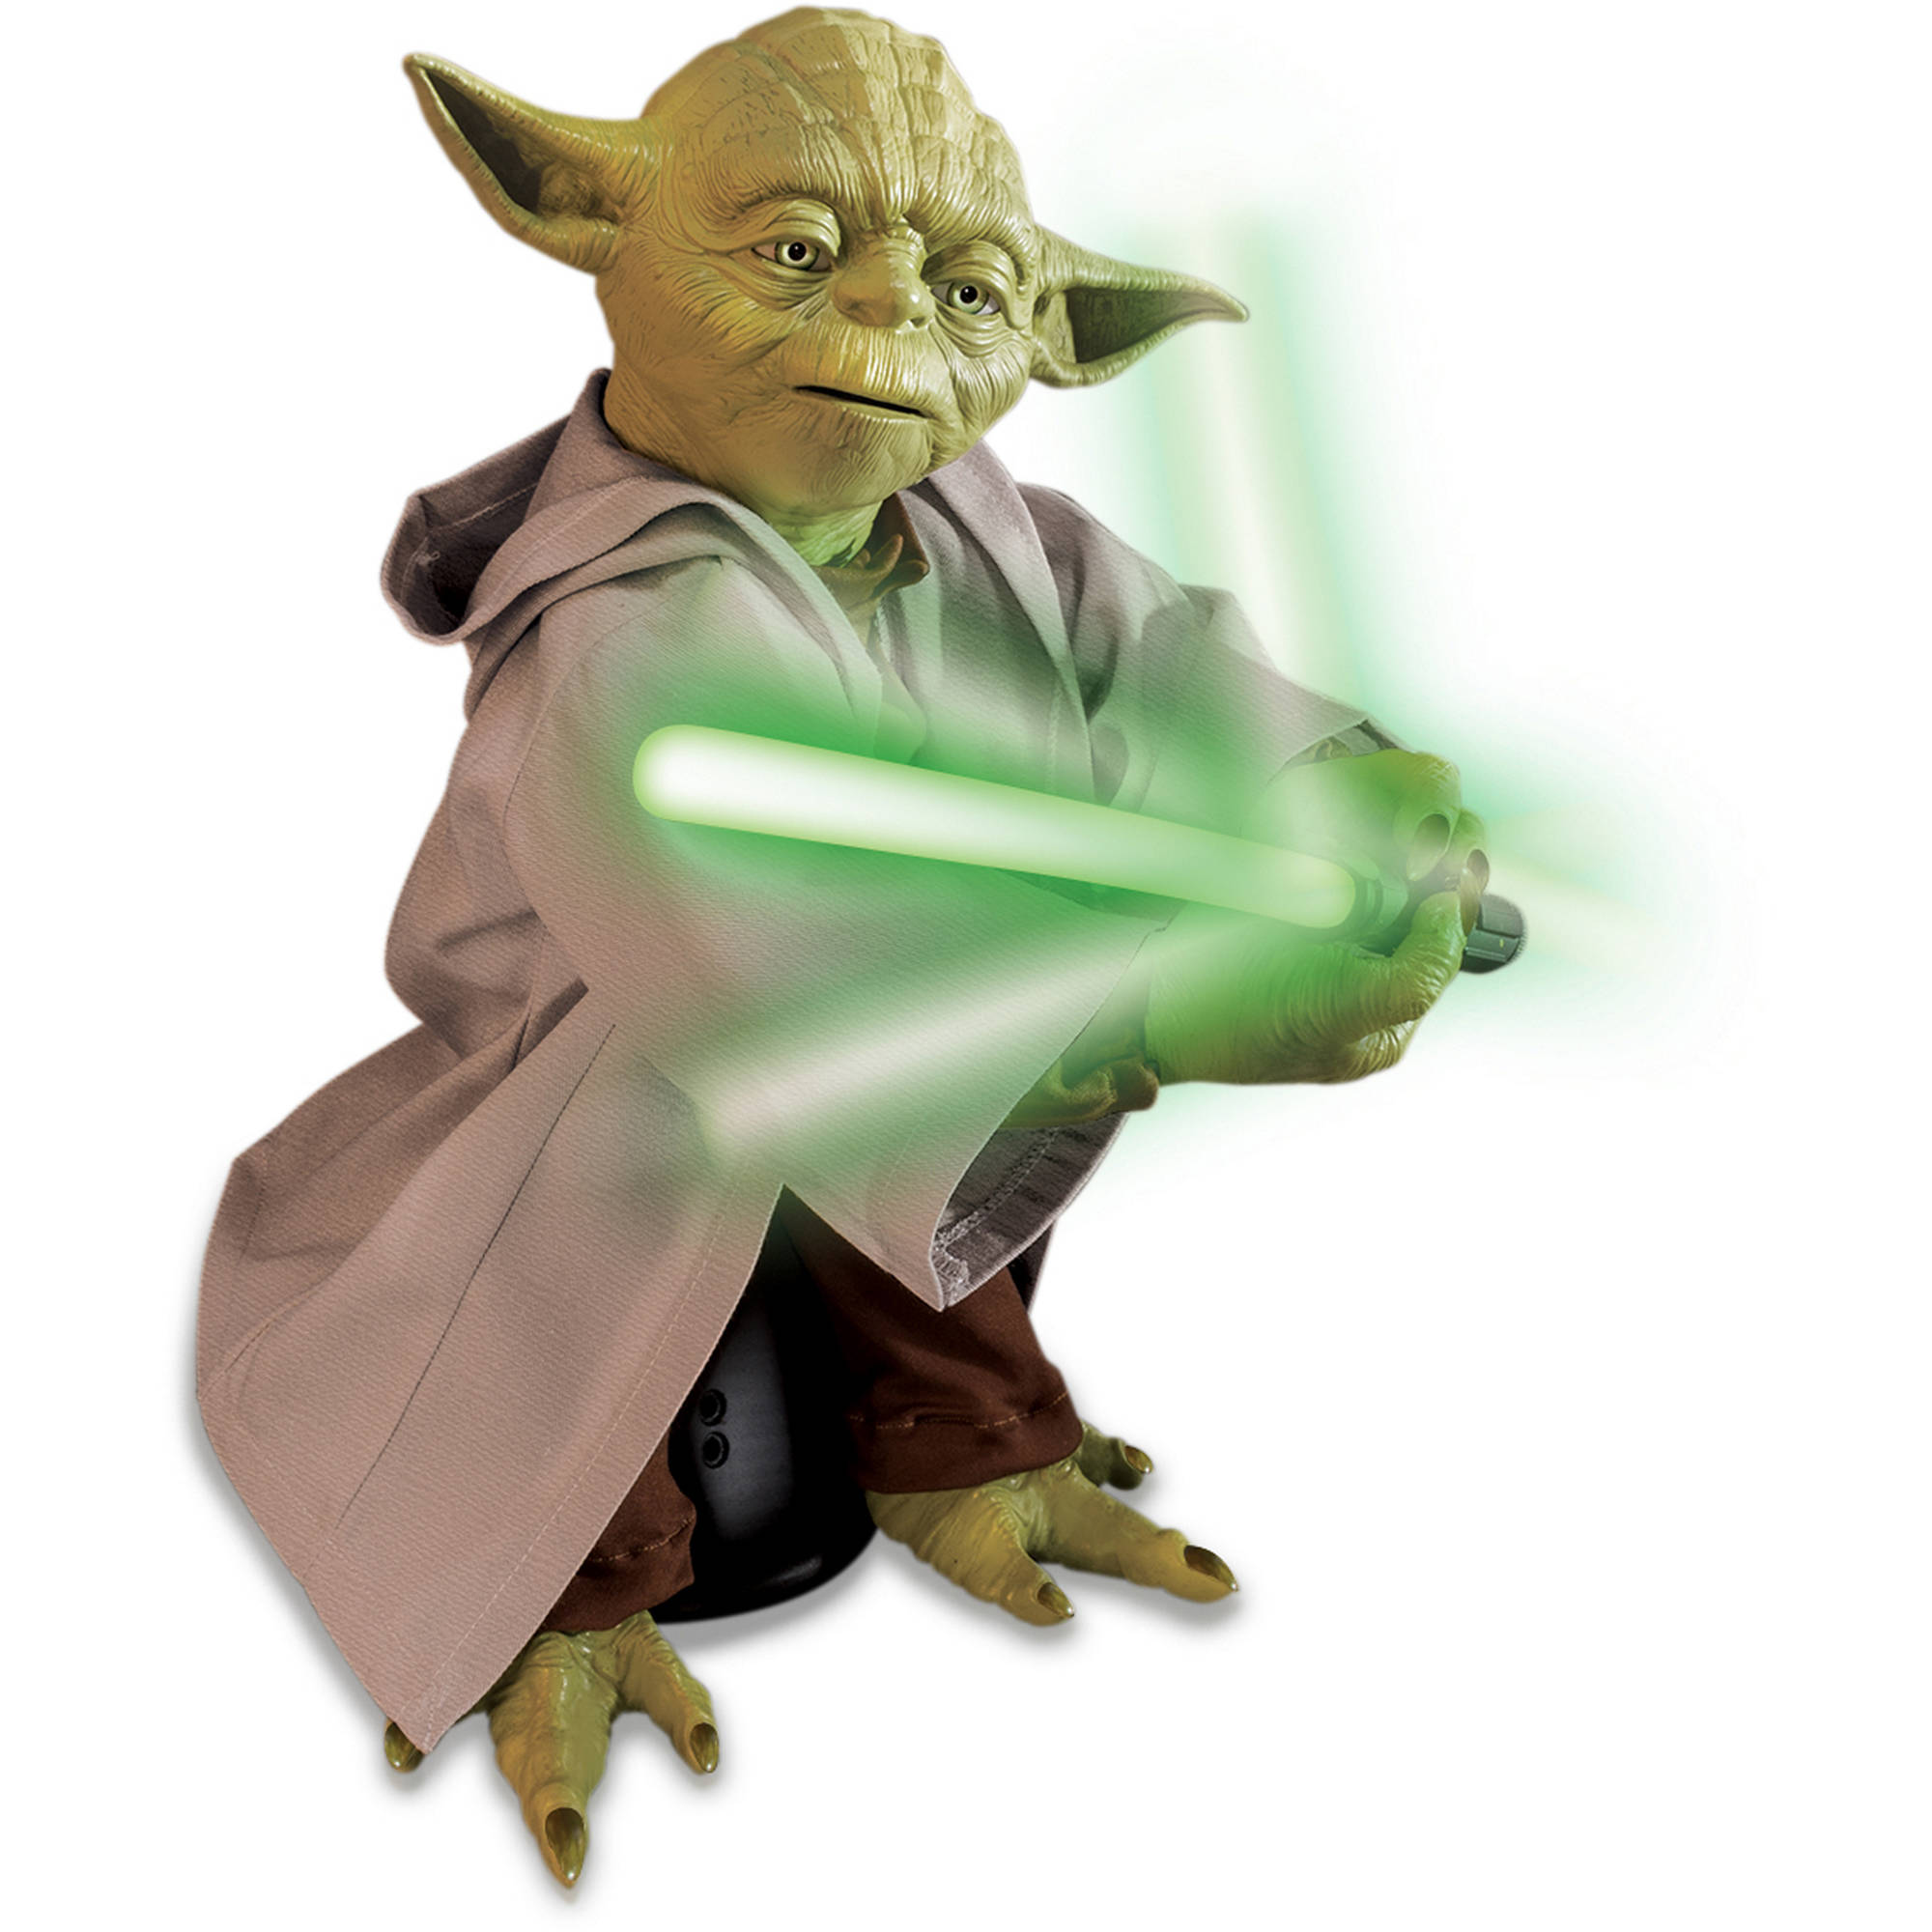 Star Wars Legendary Jedi Master Yoda by EVERWIN TOYS (DONGGUAN) CO., LTD.